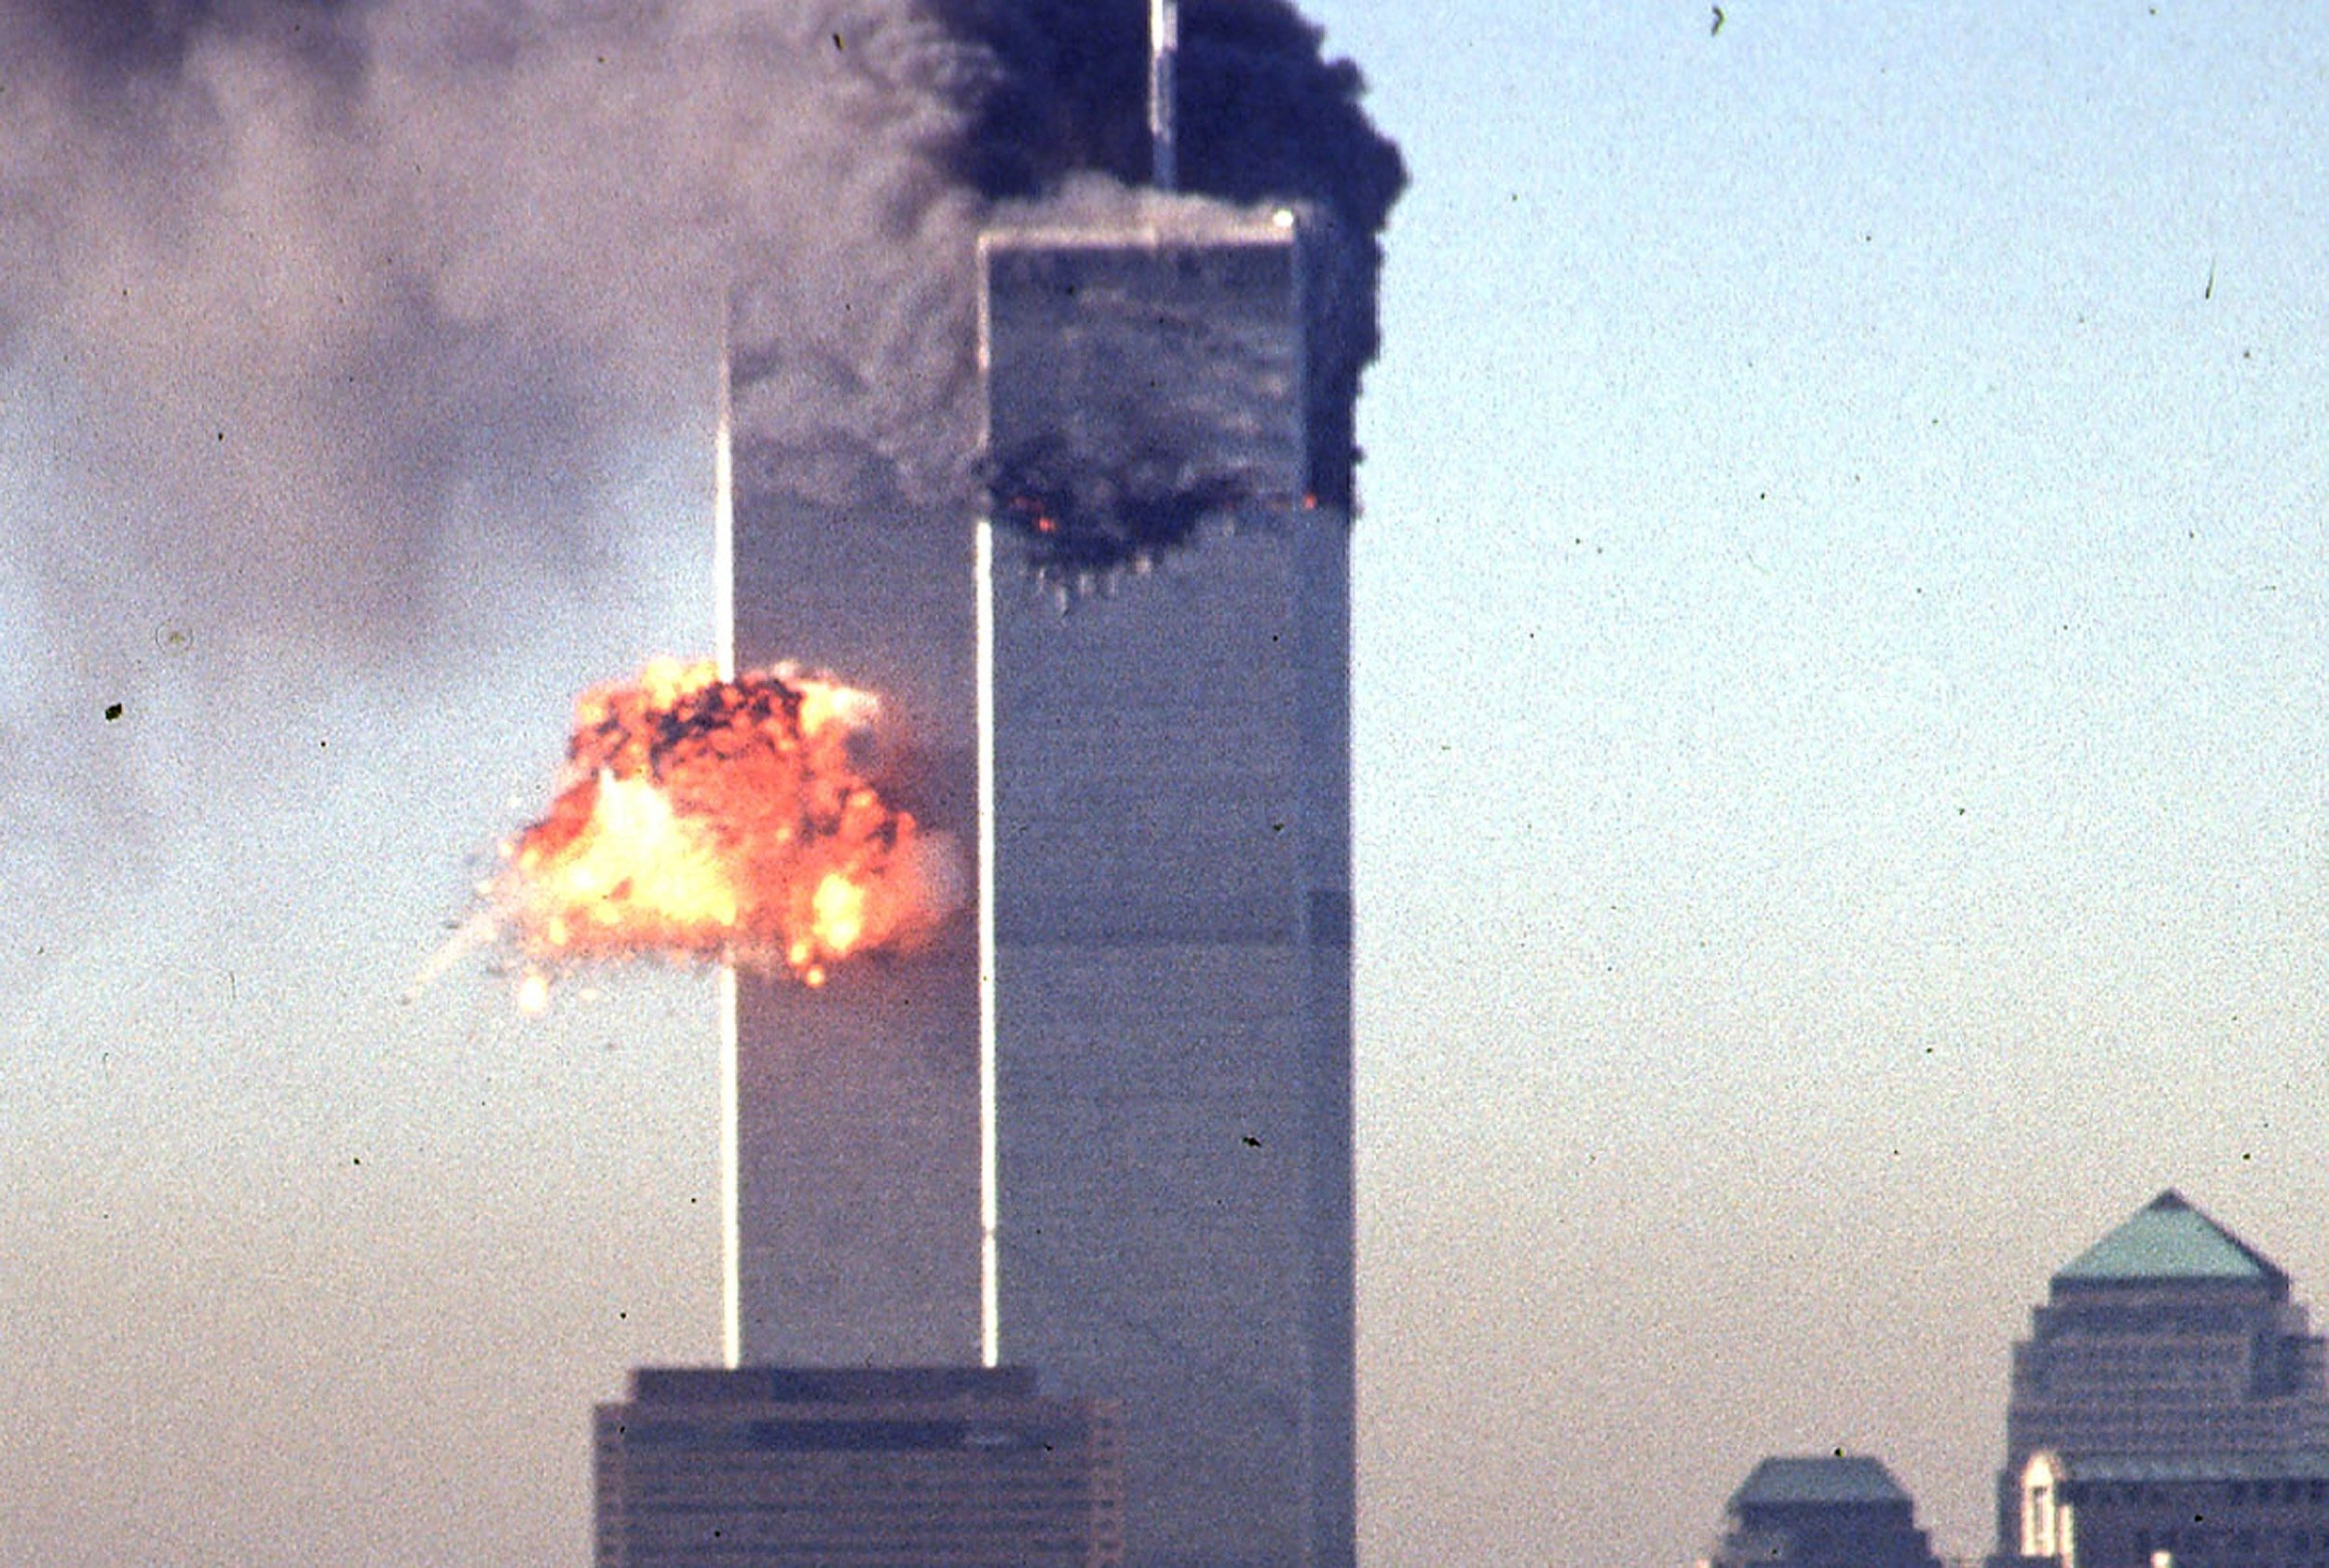 Smoke and flames erupt from the twin towers of the World Trade Center after commercial aircraft were deliberately crashed into the buildings in lower Manhattan, New York, U.S., on Sep. 11, 2001. (AFP Photo)